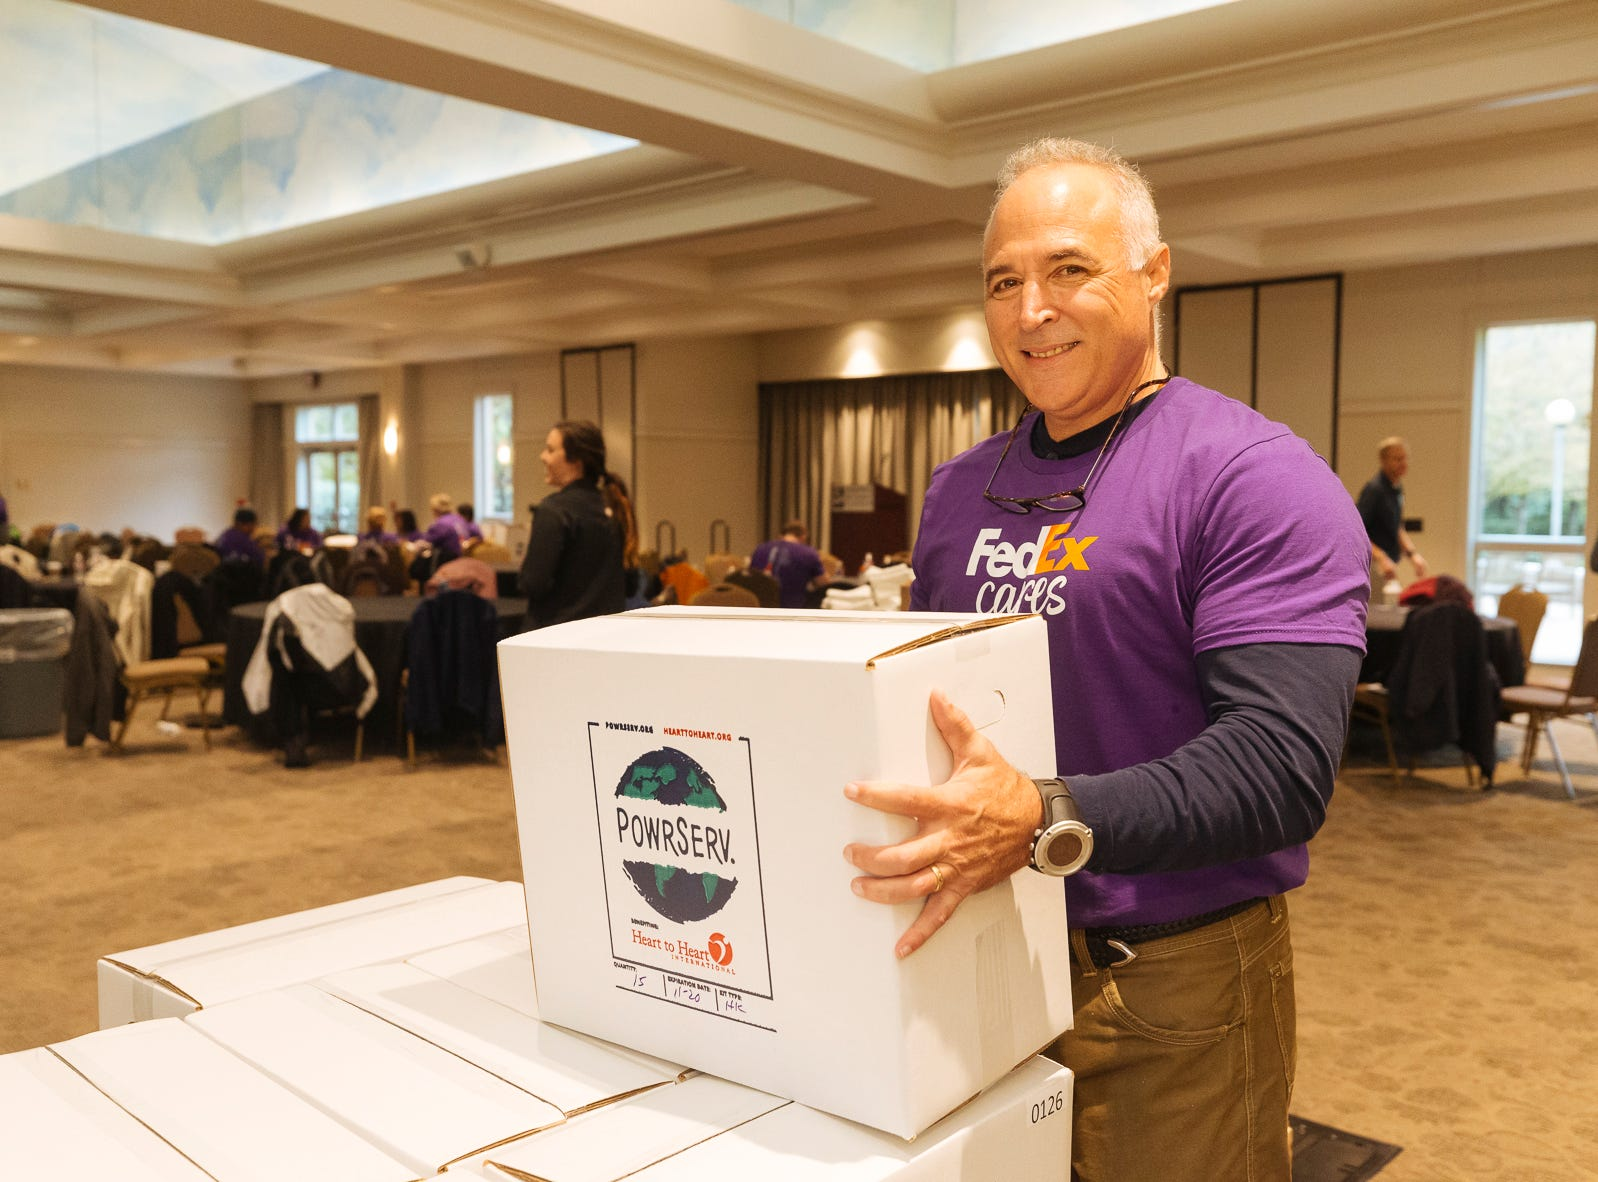 David Hankins joins more than 100 FedEx volunteers collaborate with Heart to Heart International assembling 3,600 hygiene kits at the Memphis Botanic Gardens on Friday, Oct. 26, 2018. The kits will be used to provide health relief for victims from the devastation of Hurricanes Florence and Michael.